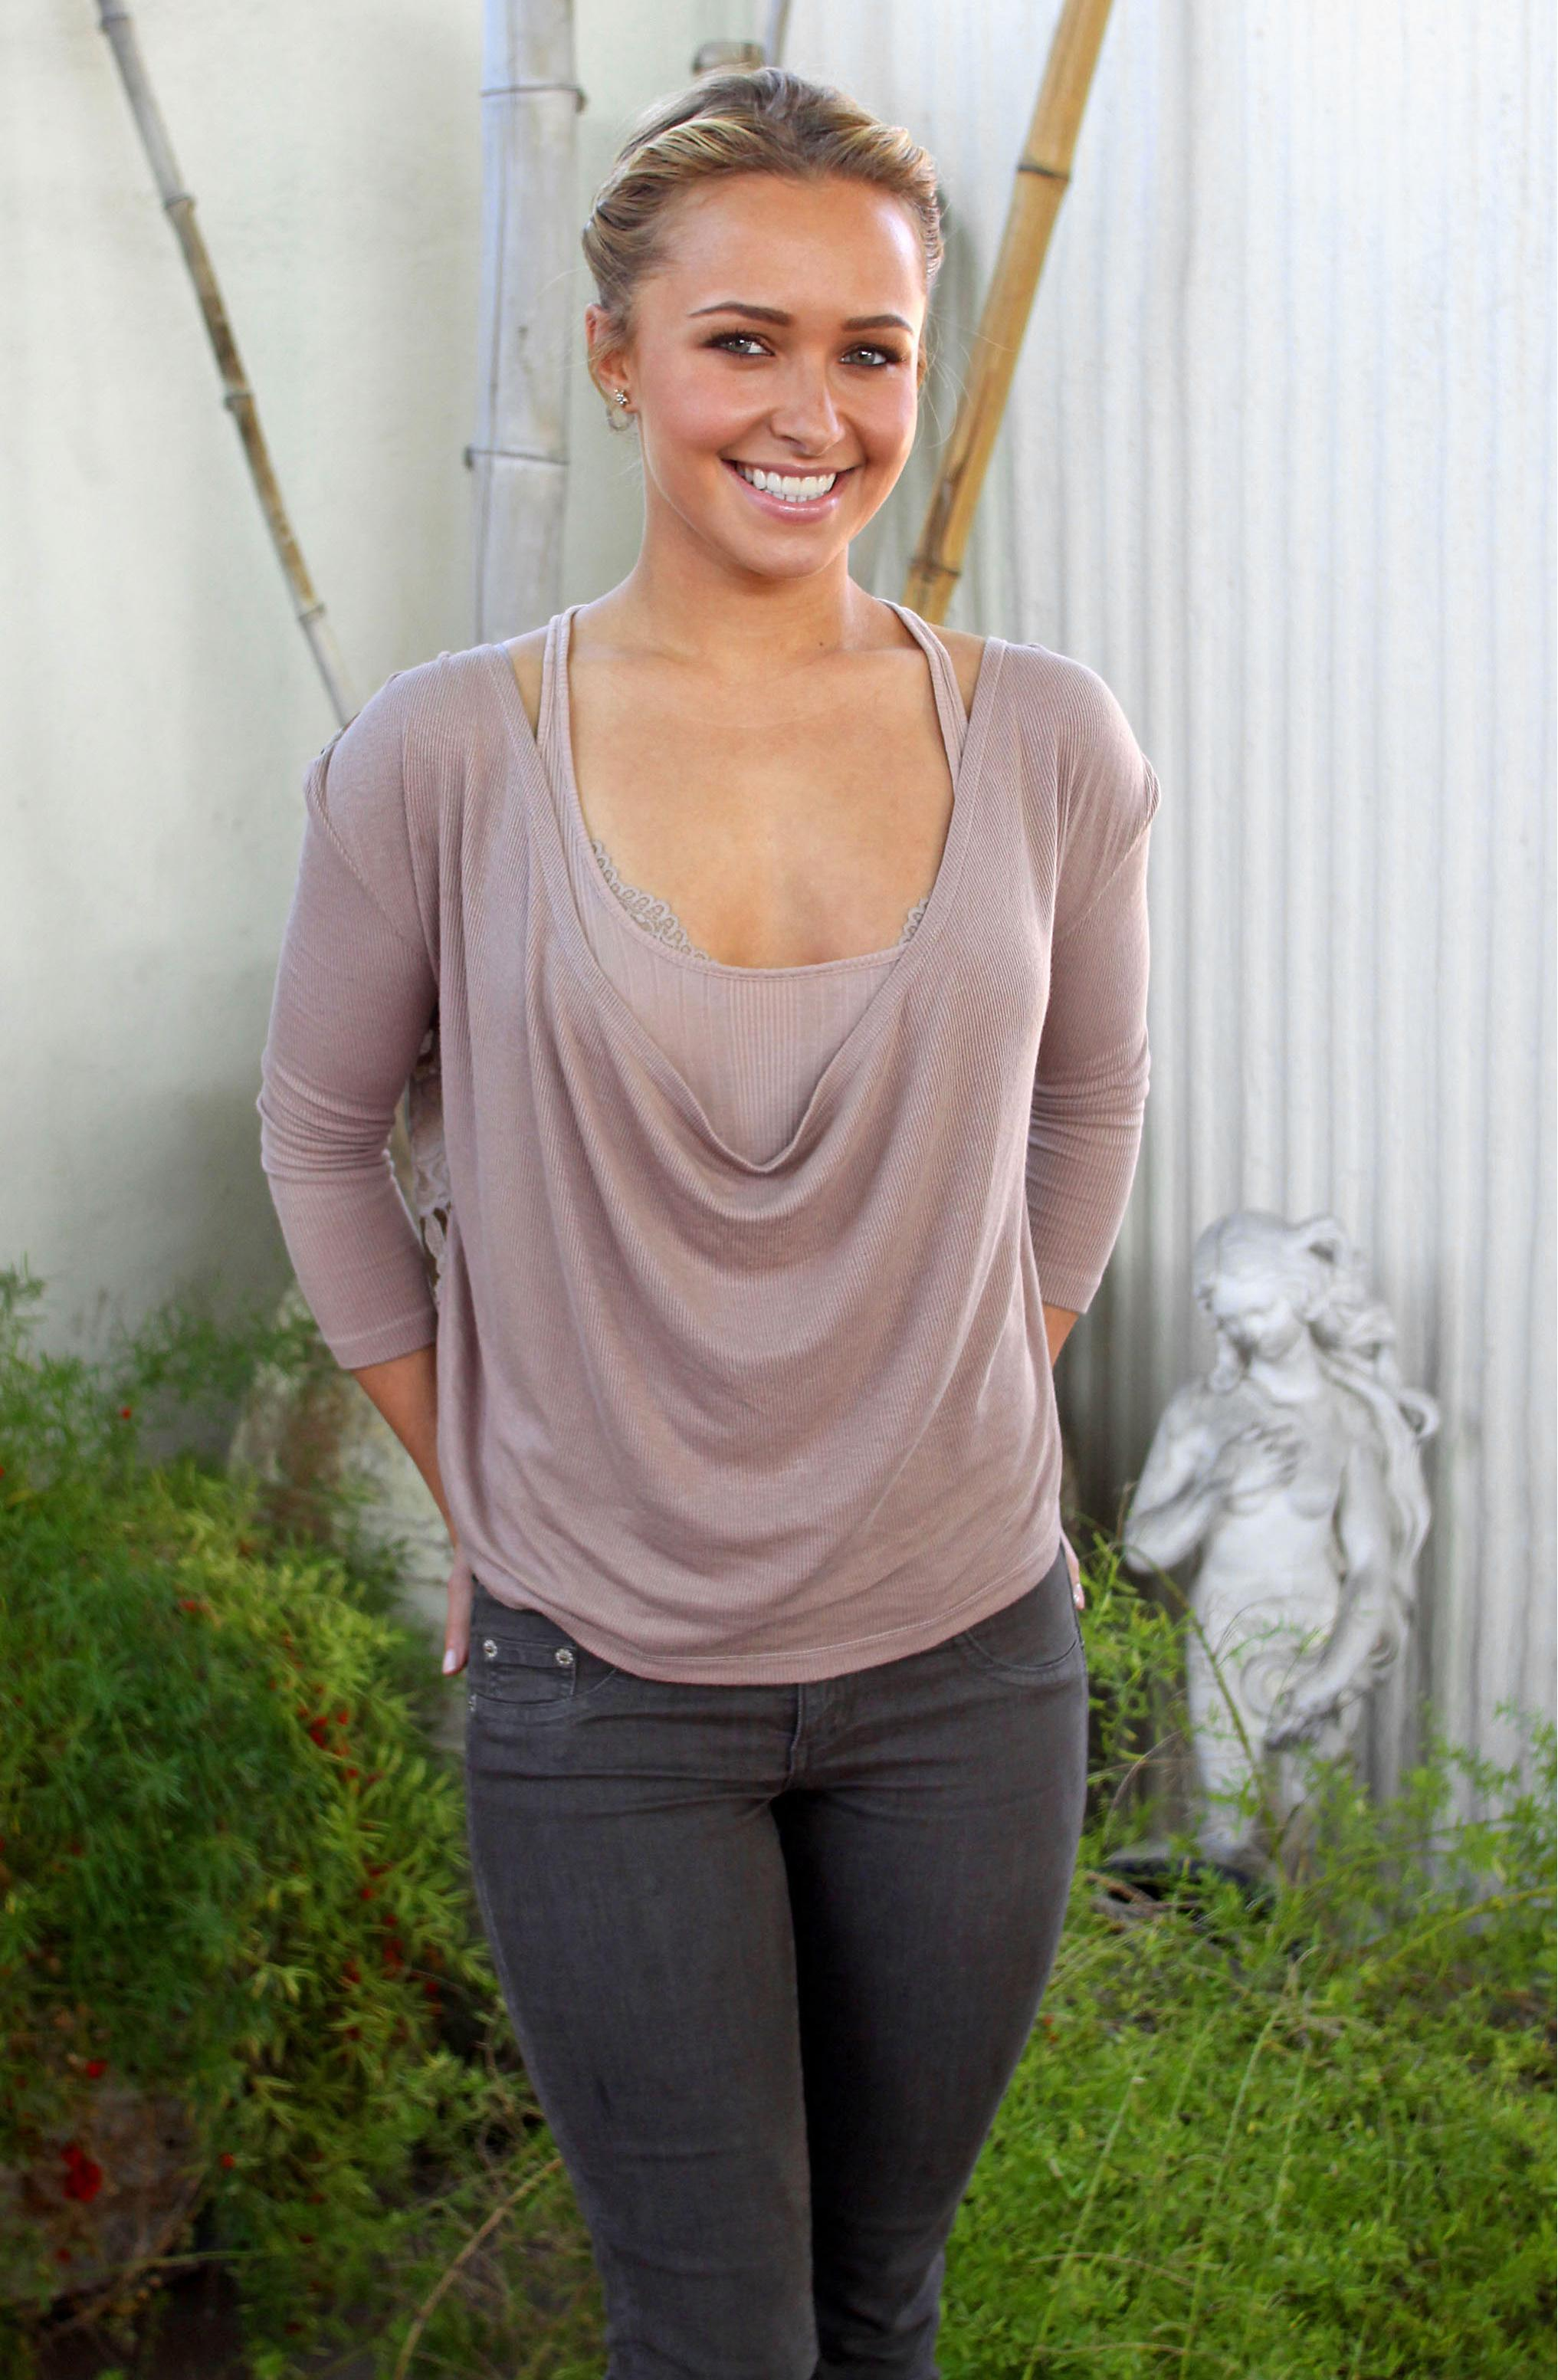 Hayden panettiere cleavage theme, will